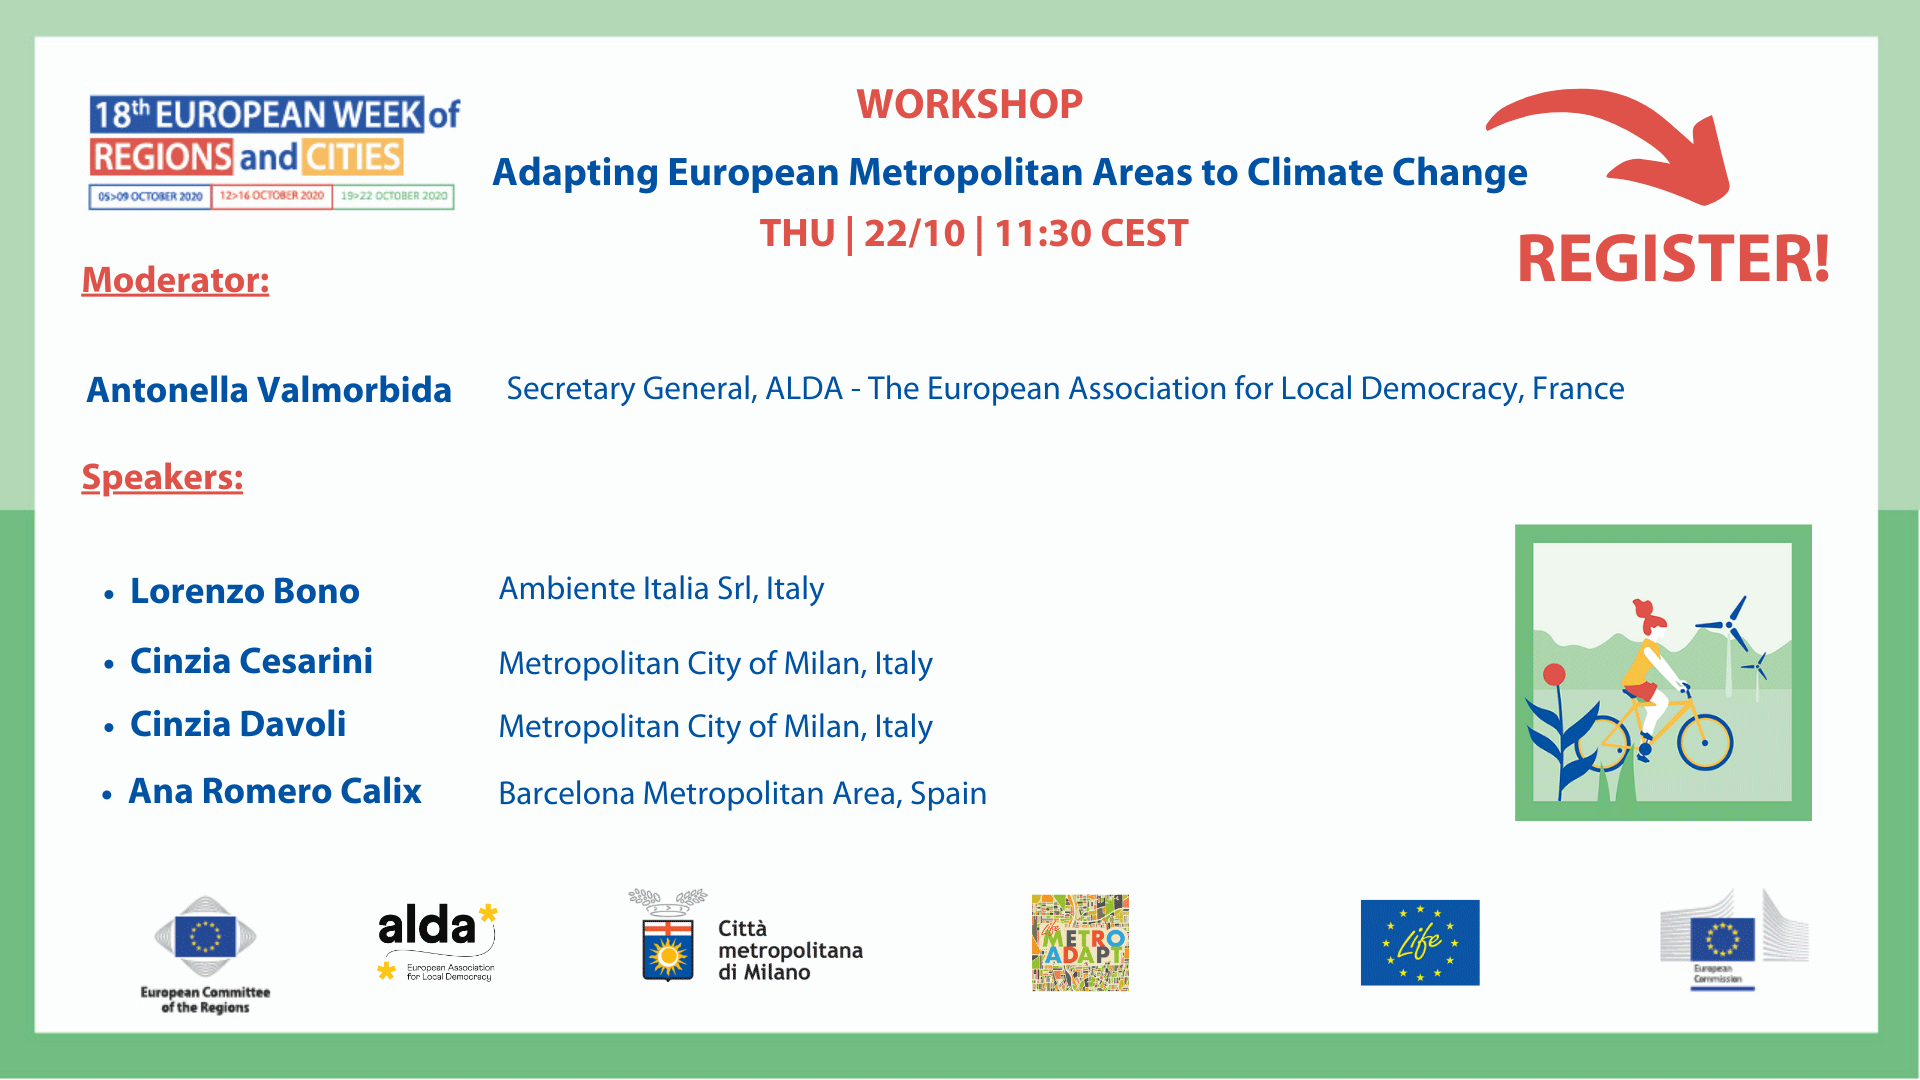 ADAPTING EUROPEAN METROPOLITAN AREAS TO CLIMATE CHANGE: JOIN THE WORKSHOP!